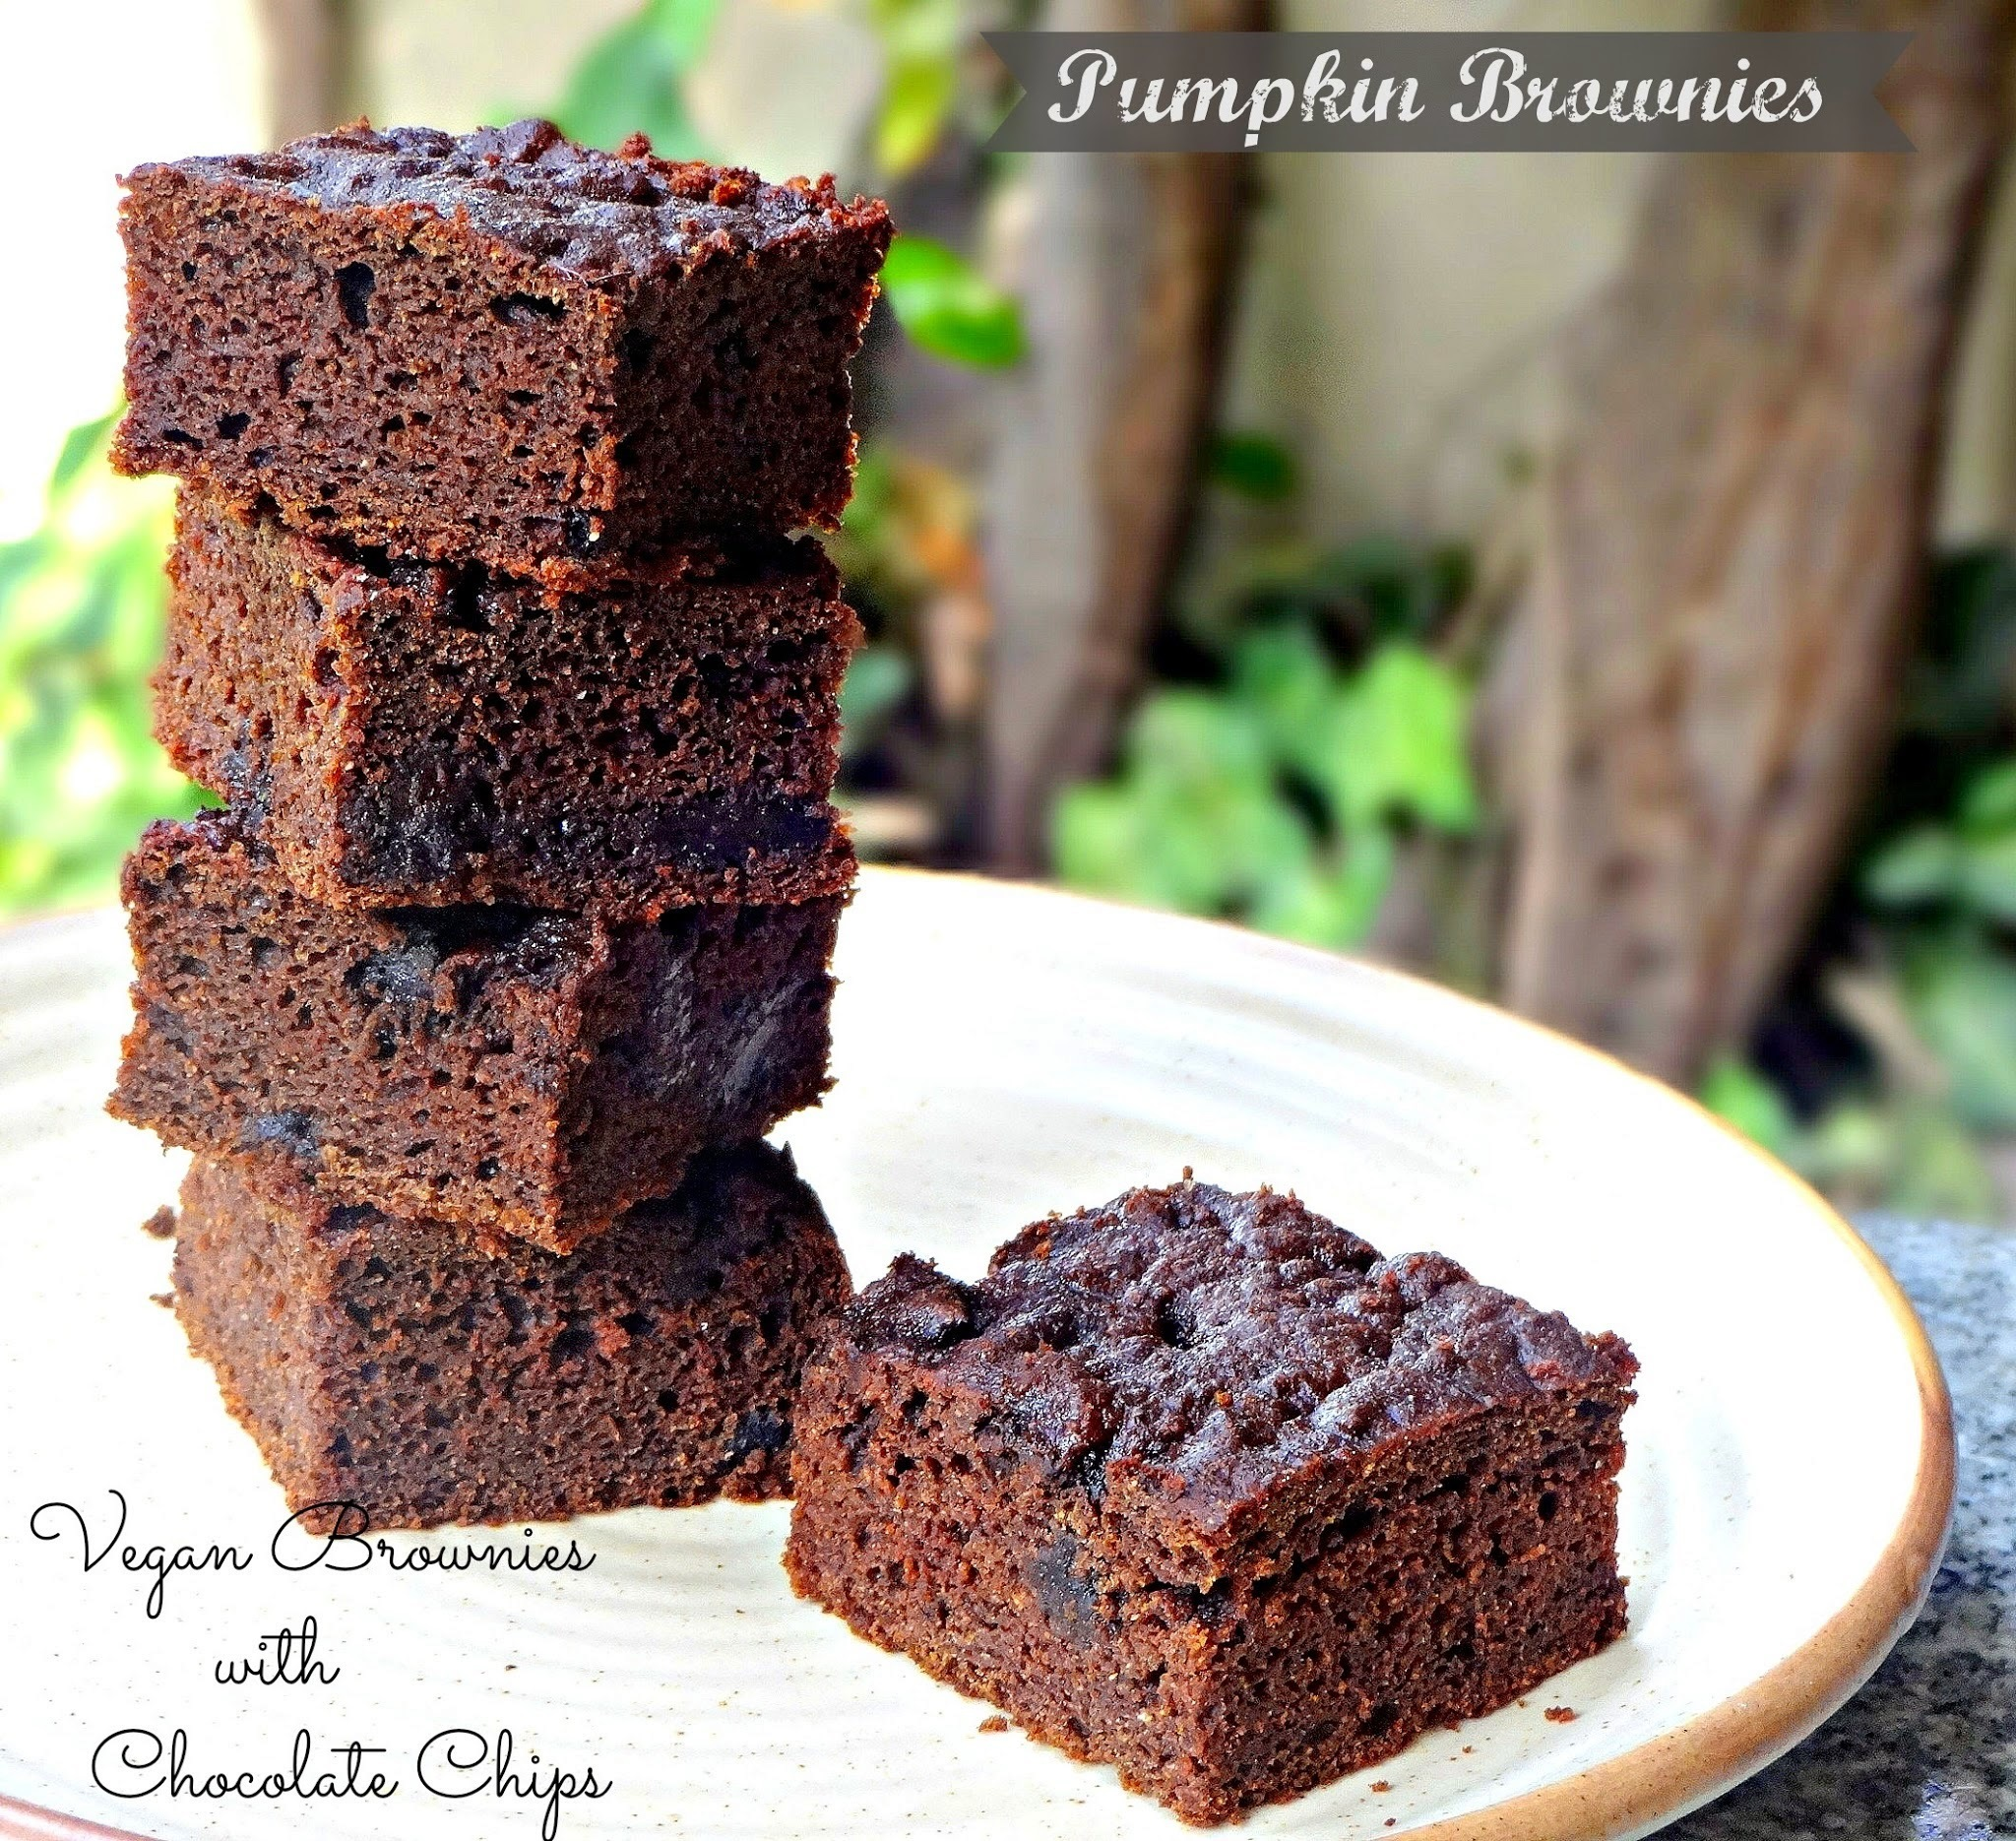 Vegan Wholegrain Pumpkin and Banana Chocolate Brownies with Chocolate chips | Double chocolate Pumpkin and Banana Brownies| Fat less Brownies